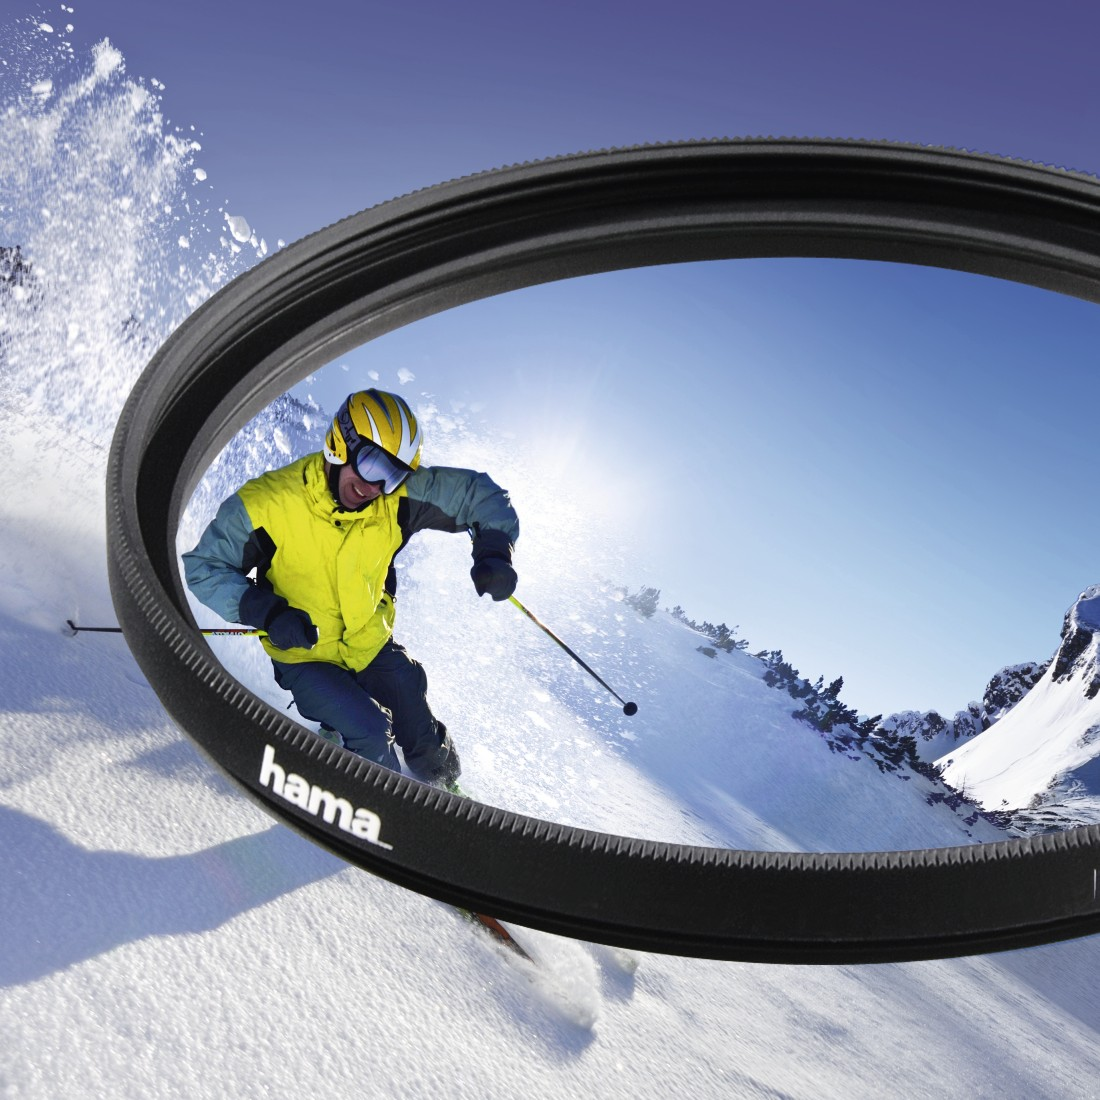 awx2 High-Res Appliance 2 - Hama, UV Filter 390, HTMC multi-coated, 46.0 mm